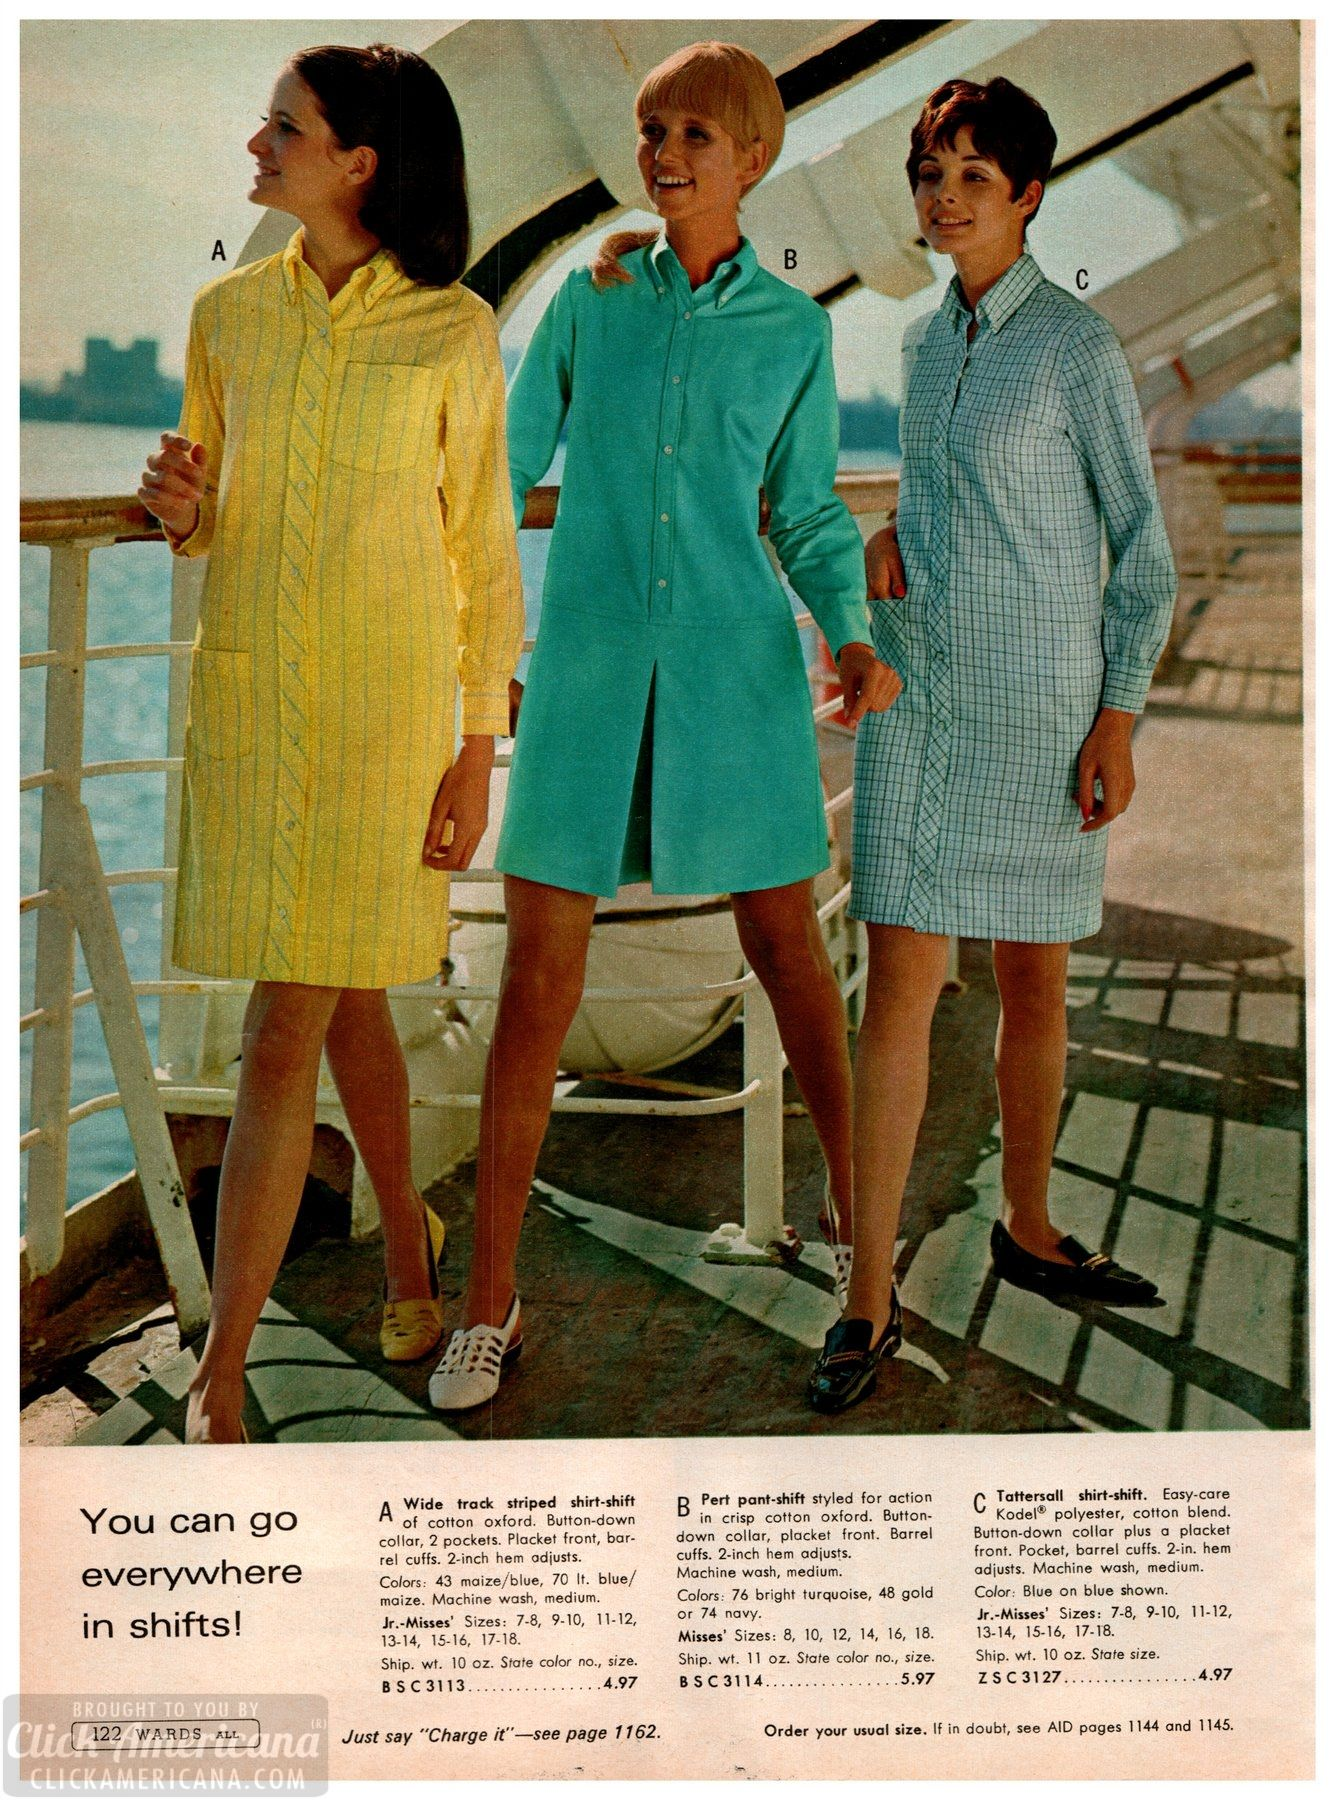 Simple And Stunning 60s Skirts Dresses From The 1968 Wards Catalog Late 60s Fashion Dresses Happy Clothes [ 1800 x 1335 Pixel ]